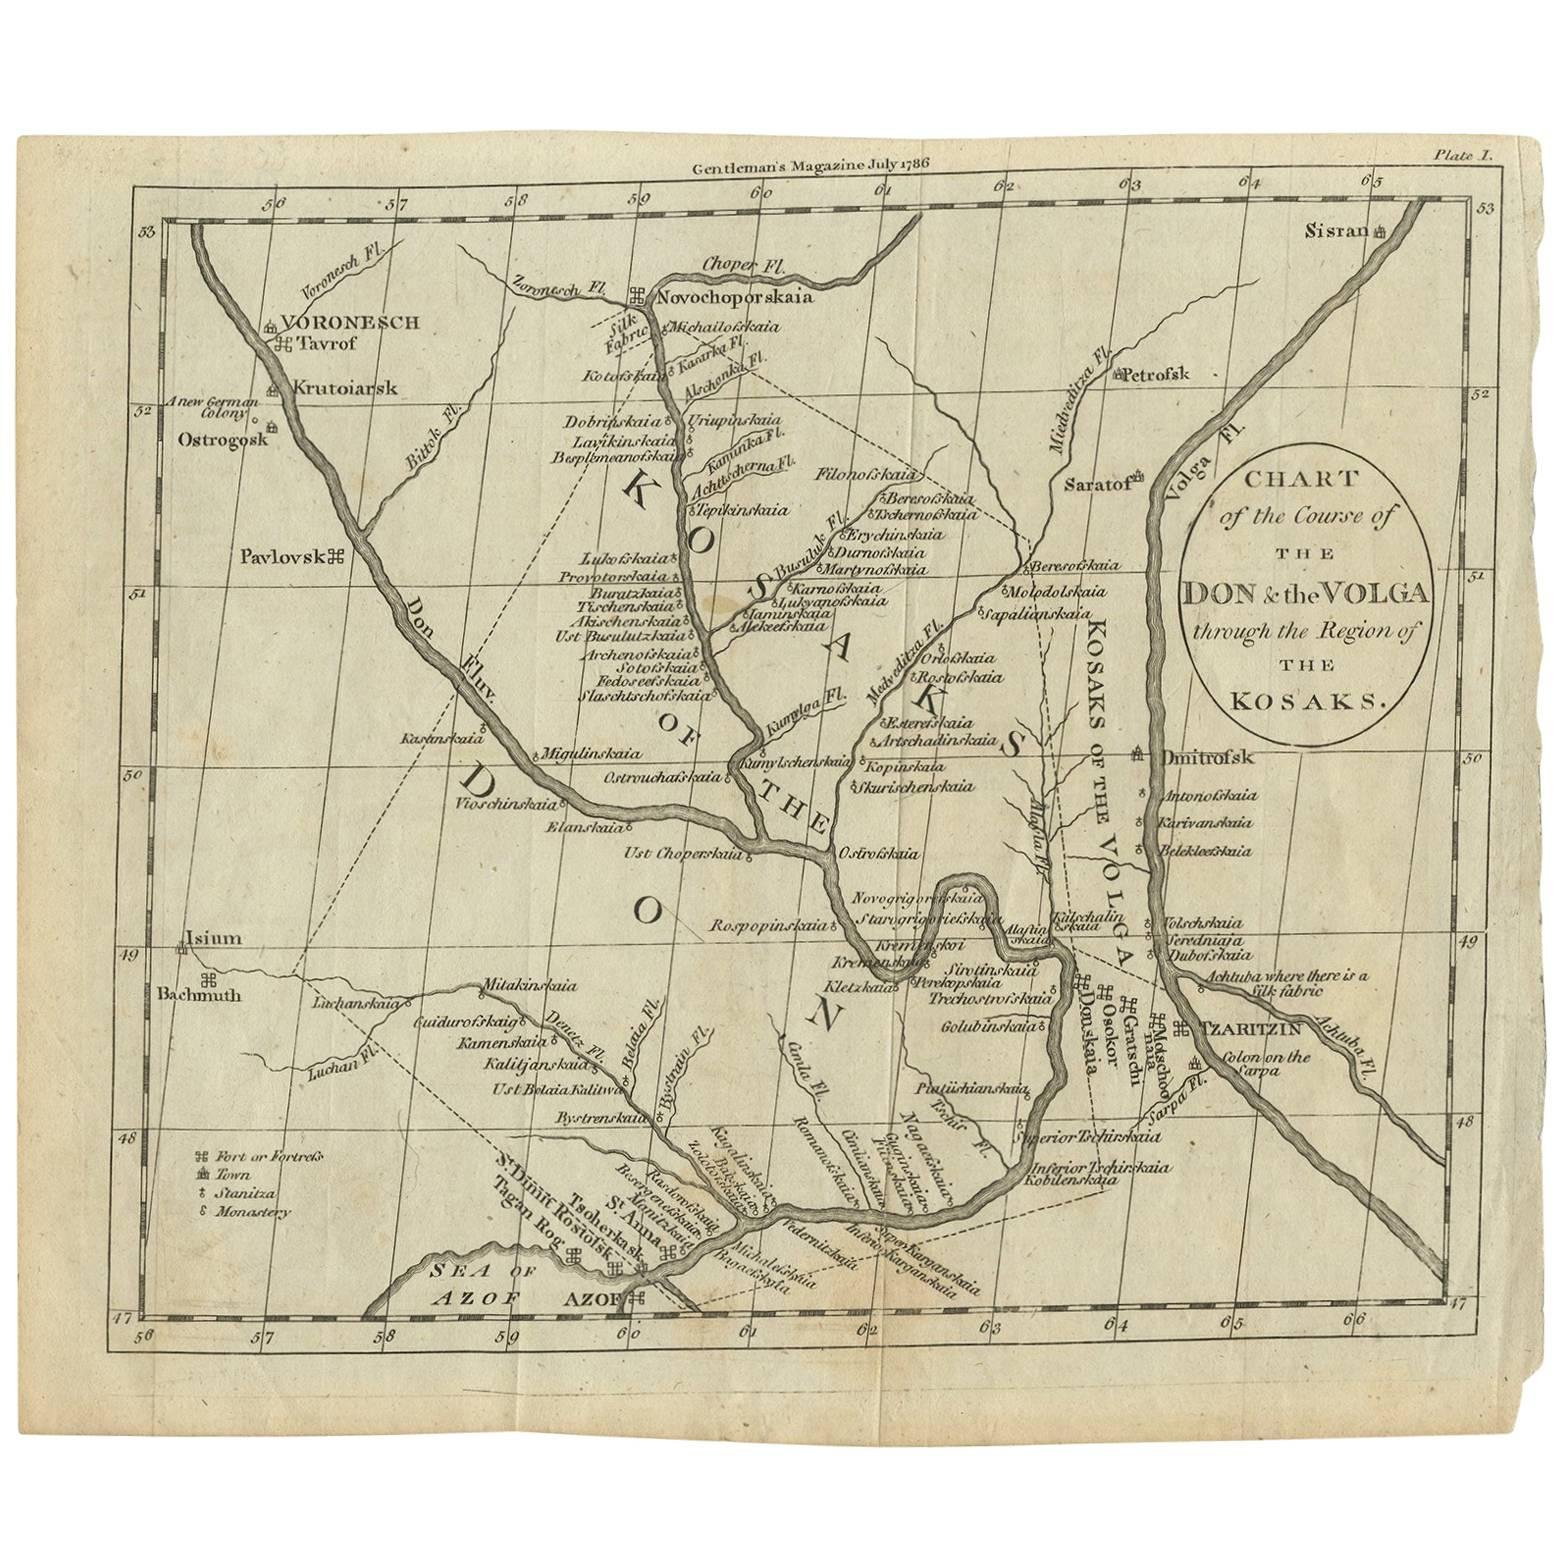 Antique Map of the Region Near the Sea of Azof Published in Gentleman's Magazine